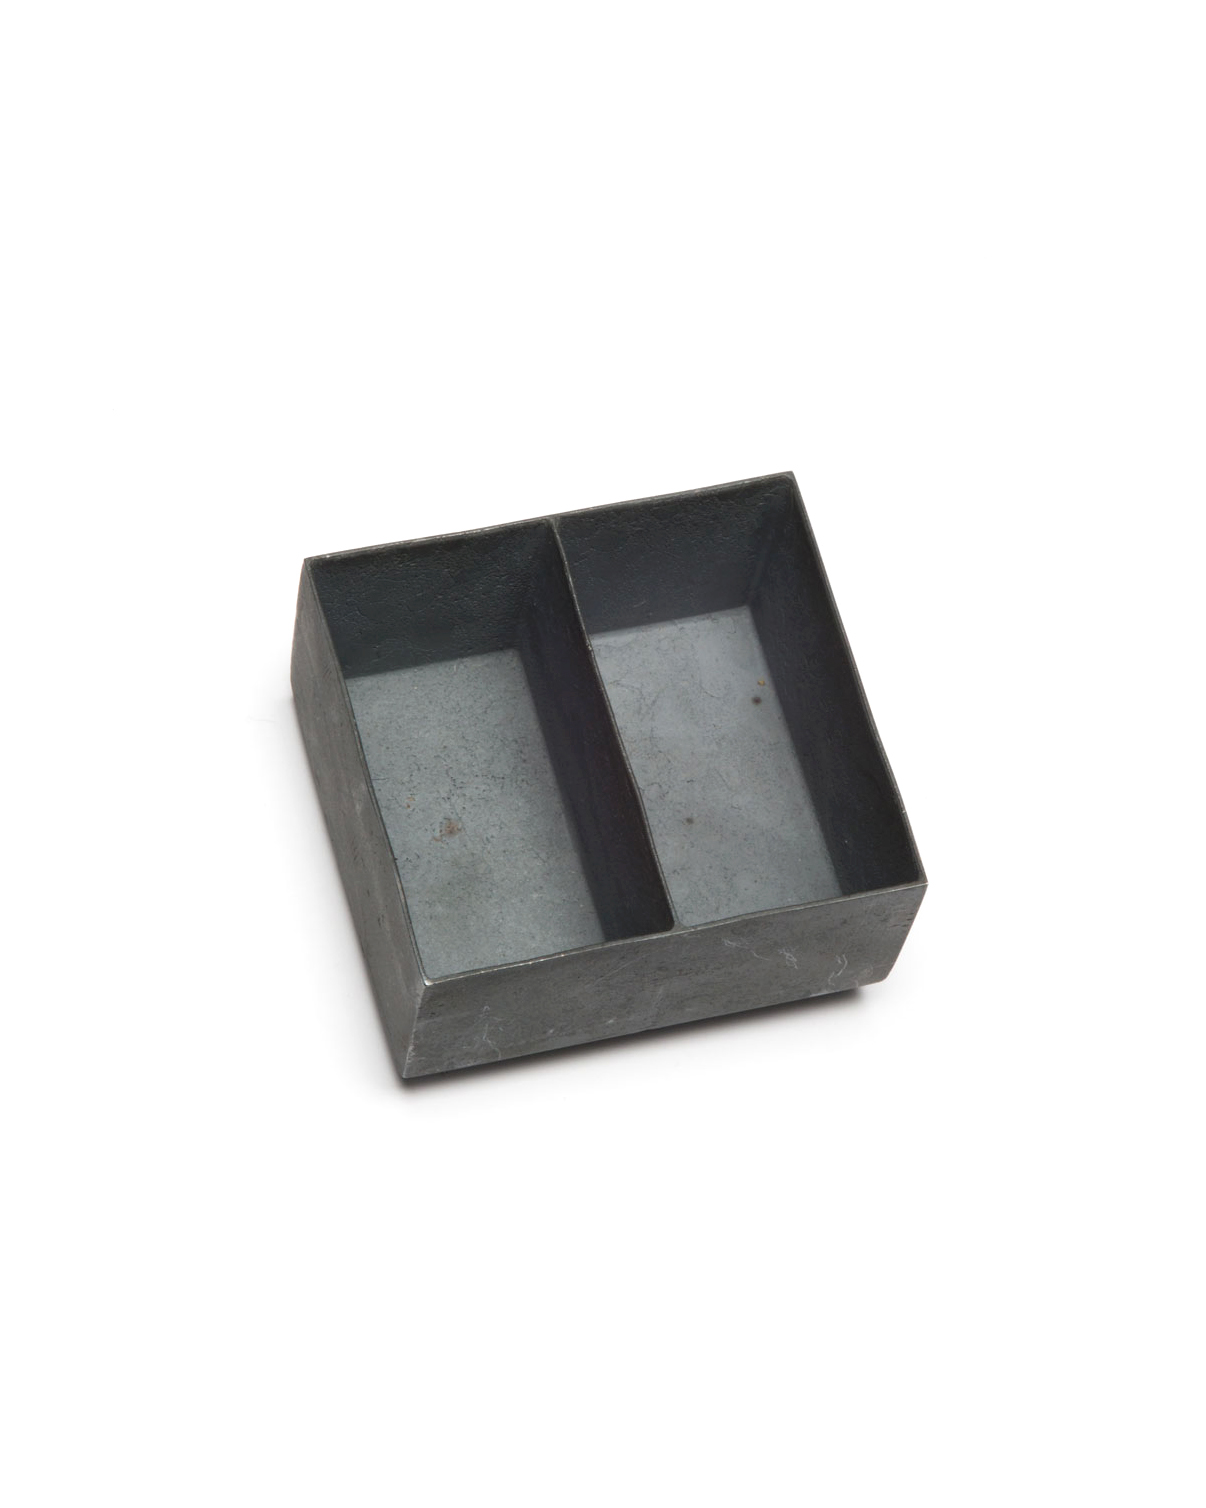 Winfried Krüger, untitled, 2008, brooch; oxidised silver, 60 x 60 x 30 mm, €1700